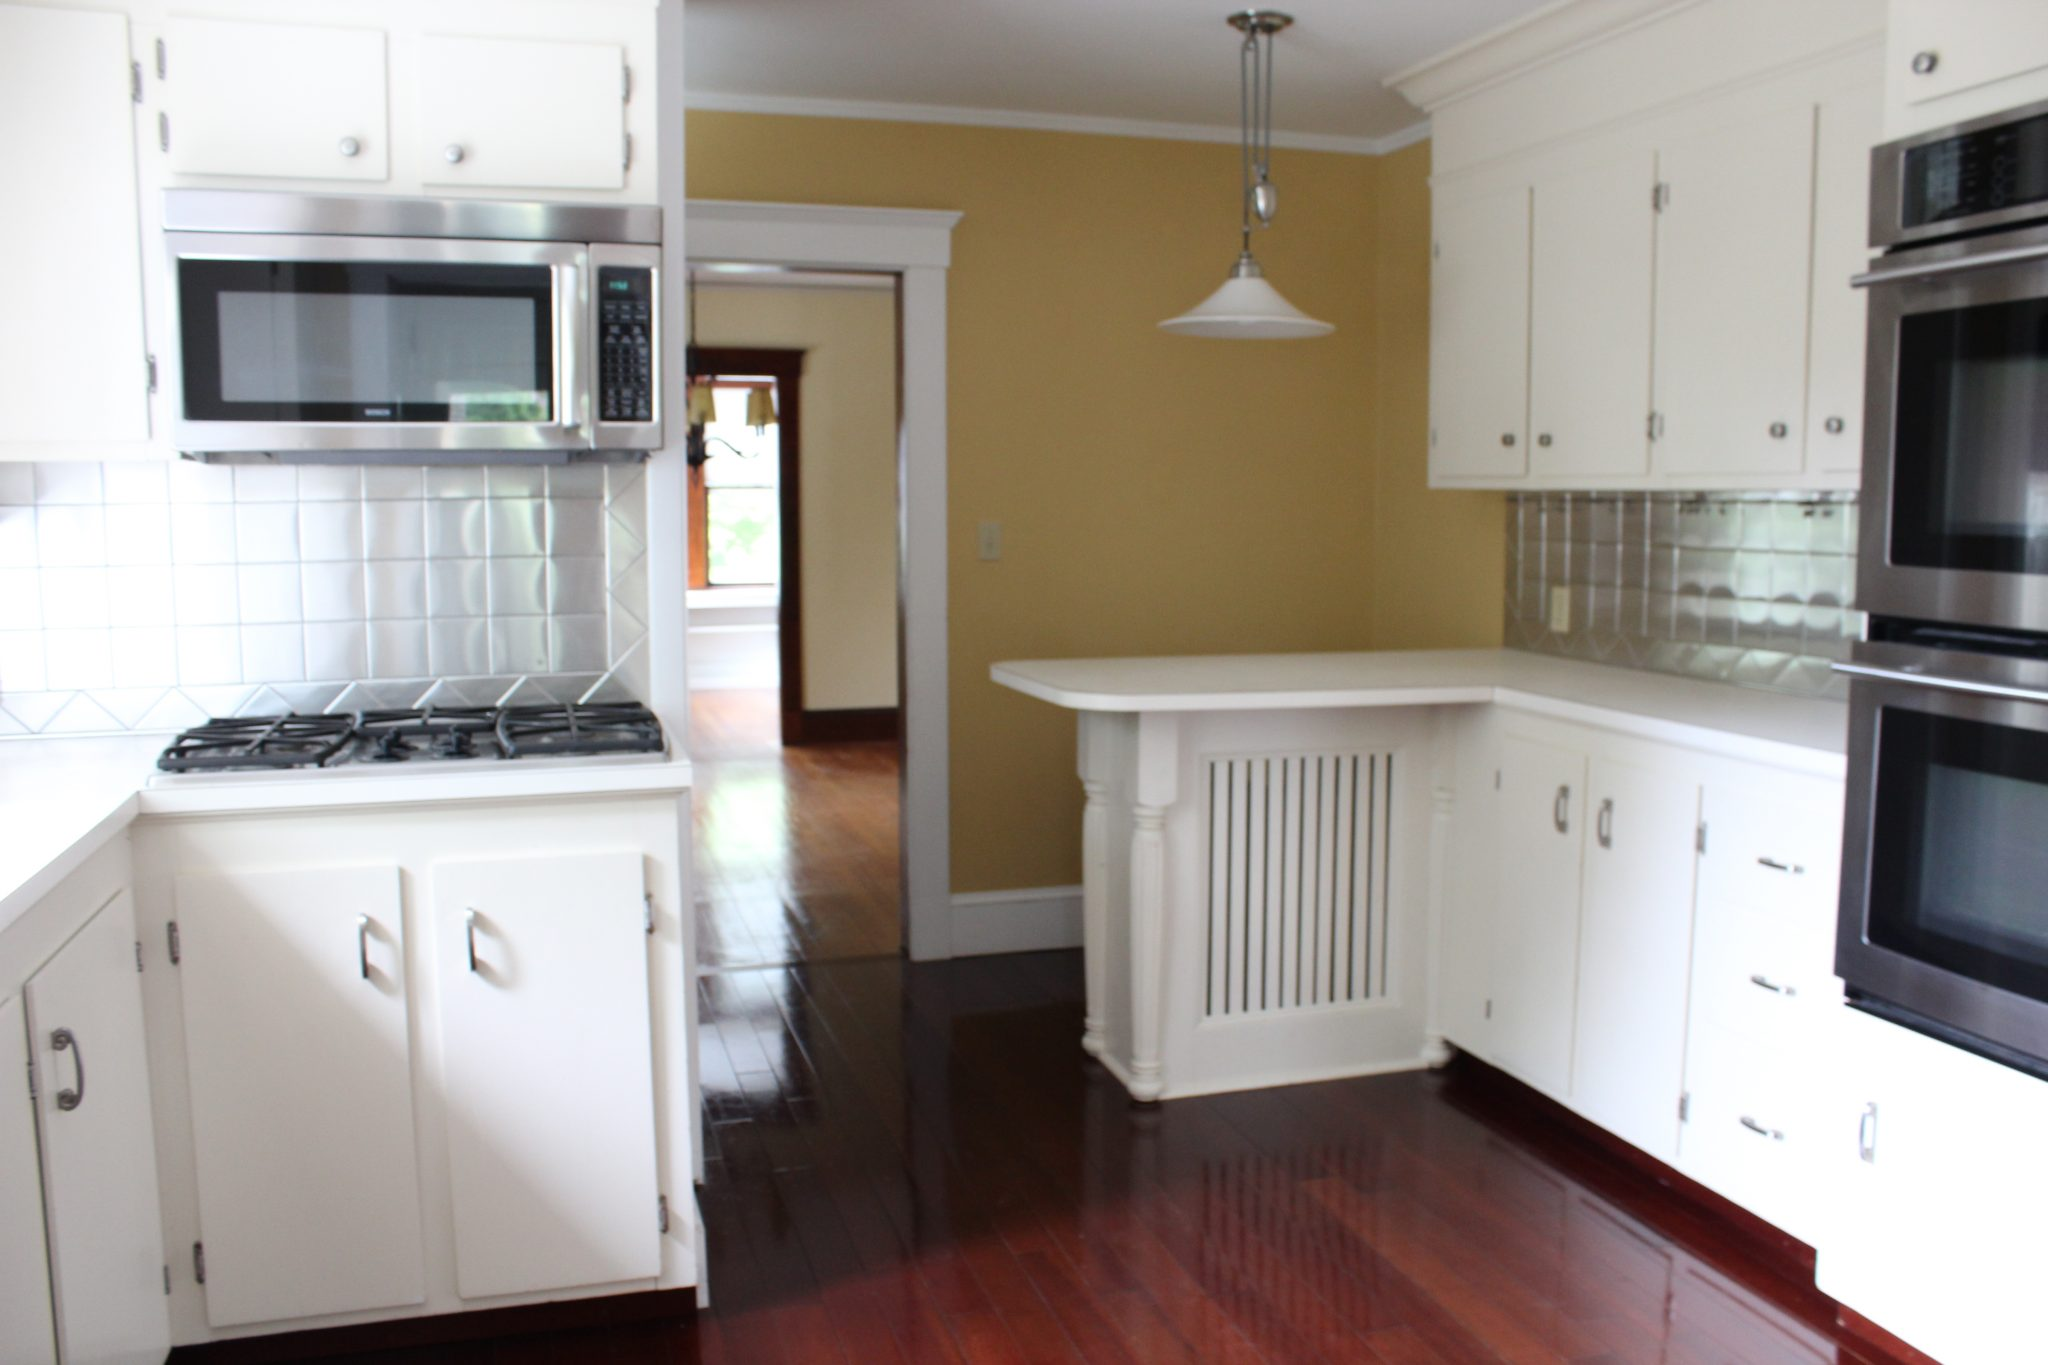 Kitchen BEFORE- Finding Silver Pennies